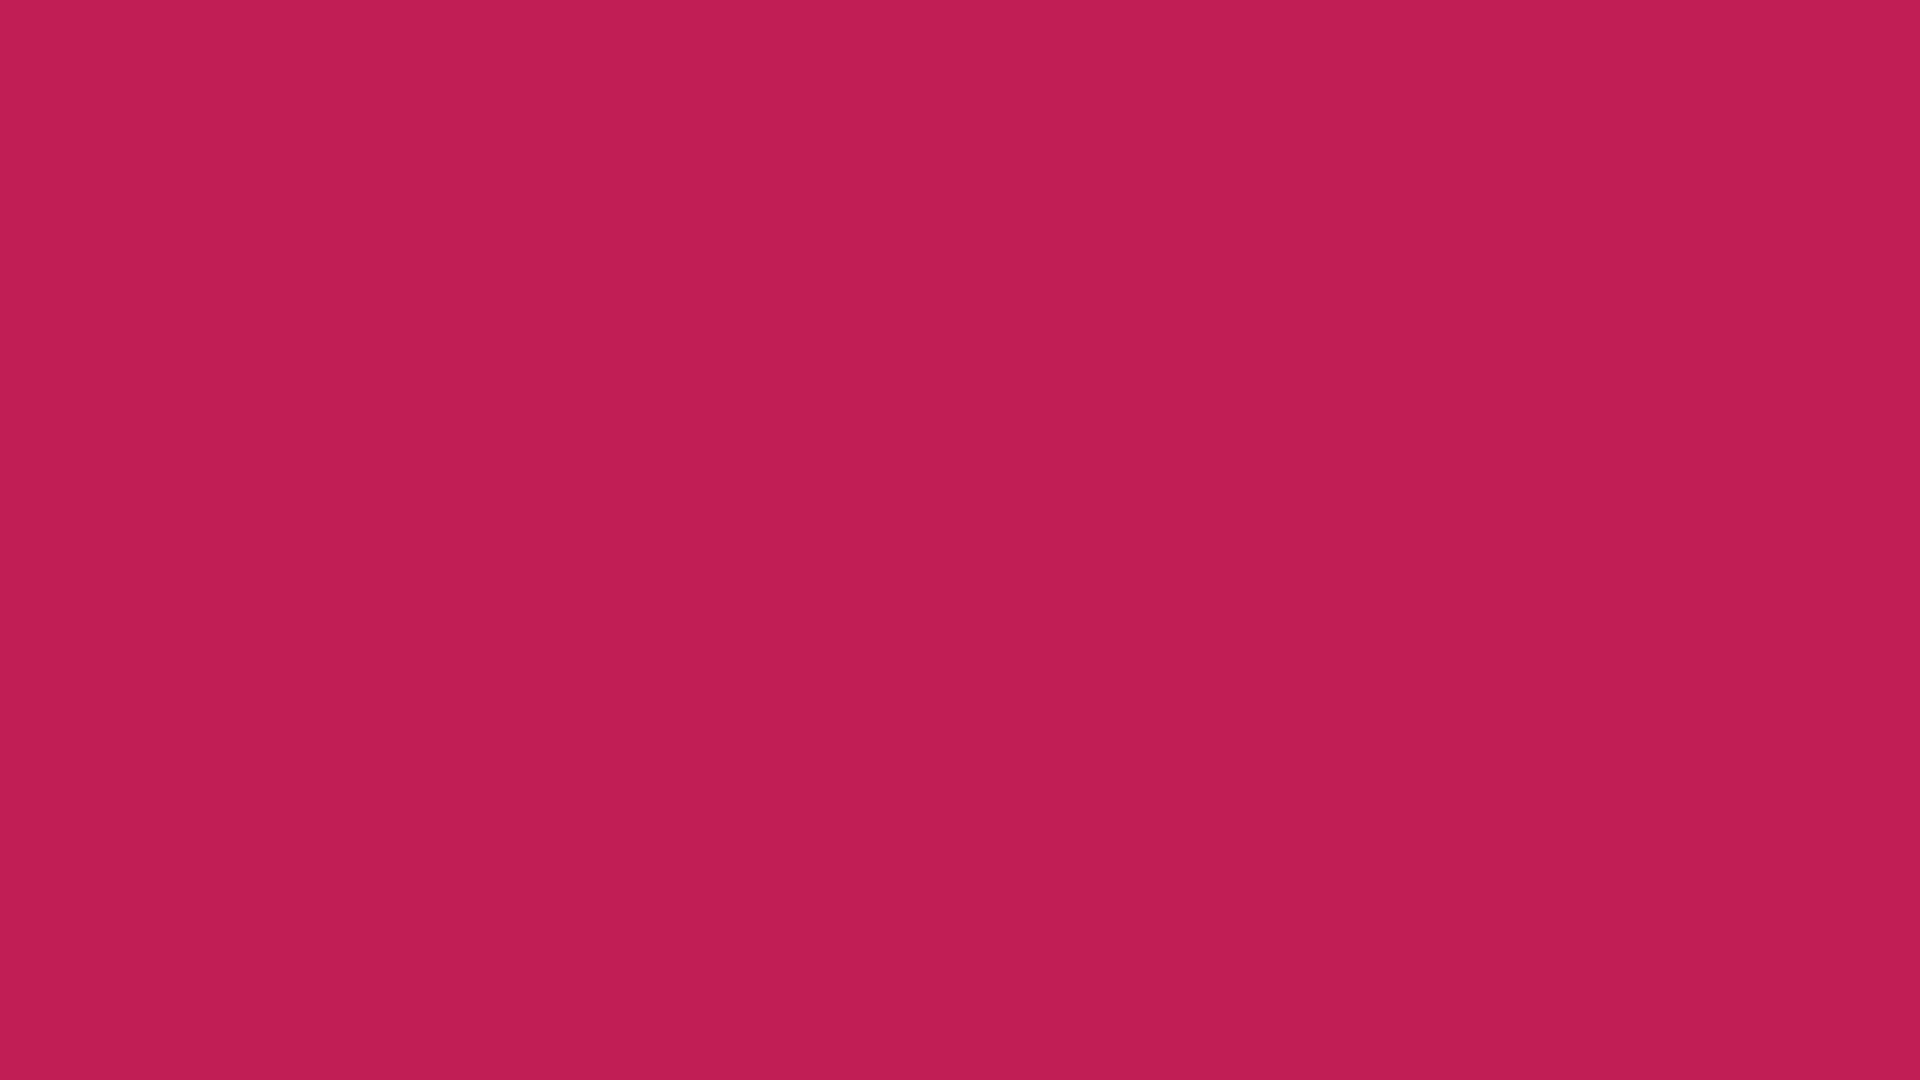 1920x1080 Rose Red Solid Color Background